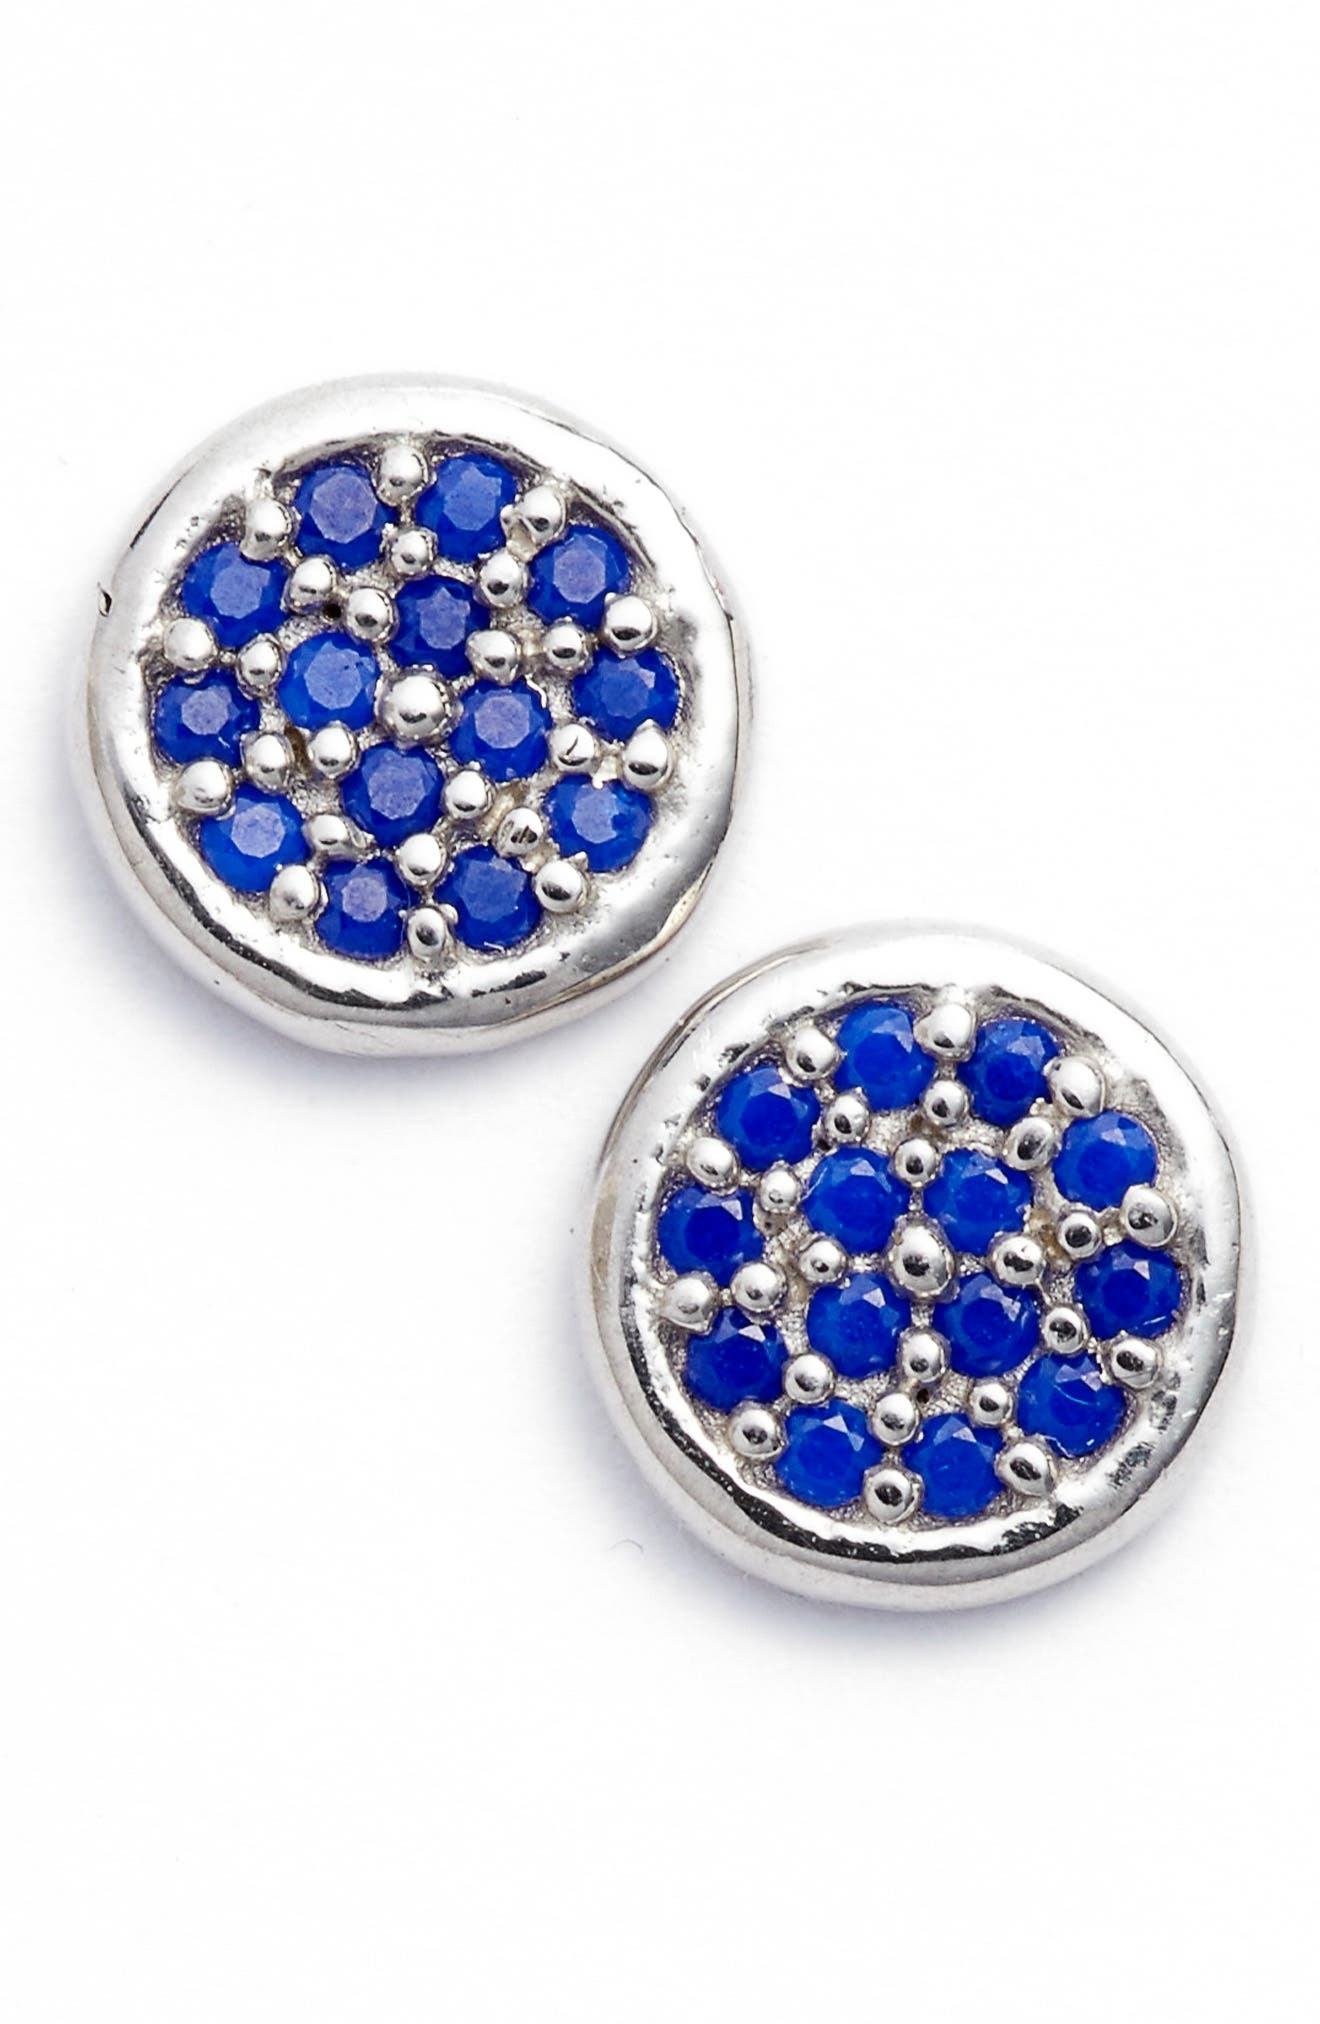 Cubic Zirconia Stud Earrings,                         Main,                         color, Lapis/ Silver